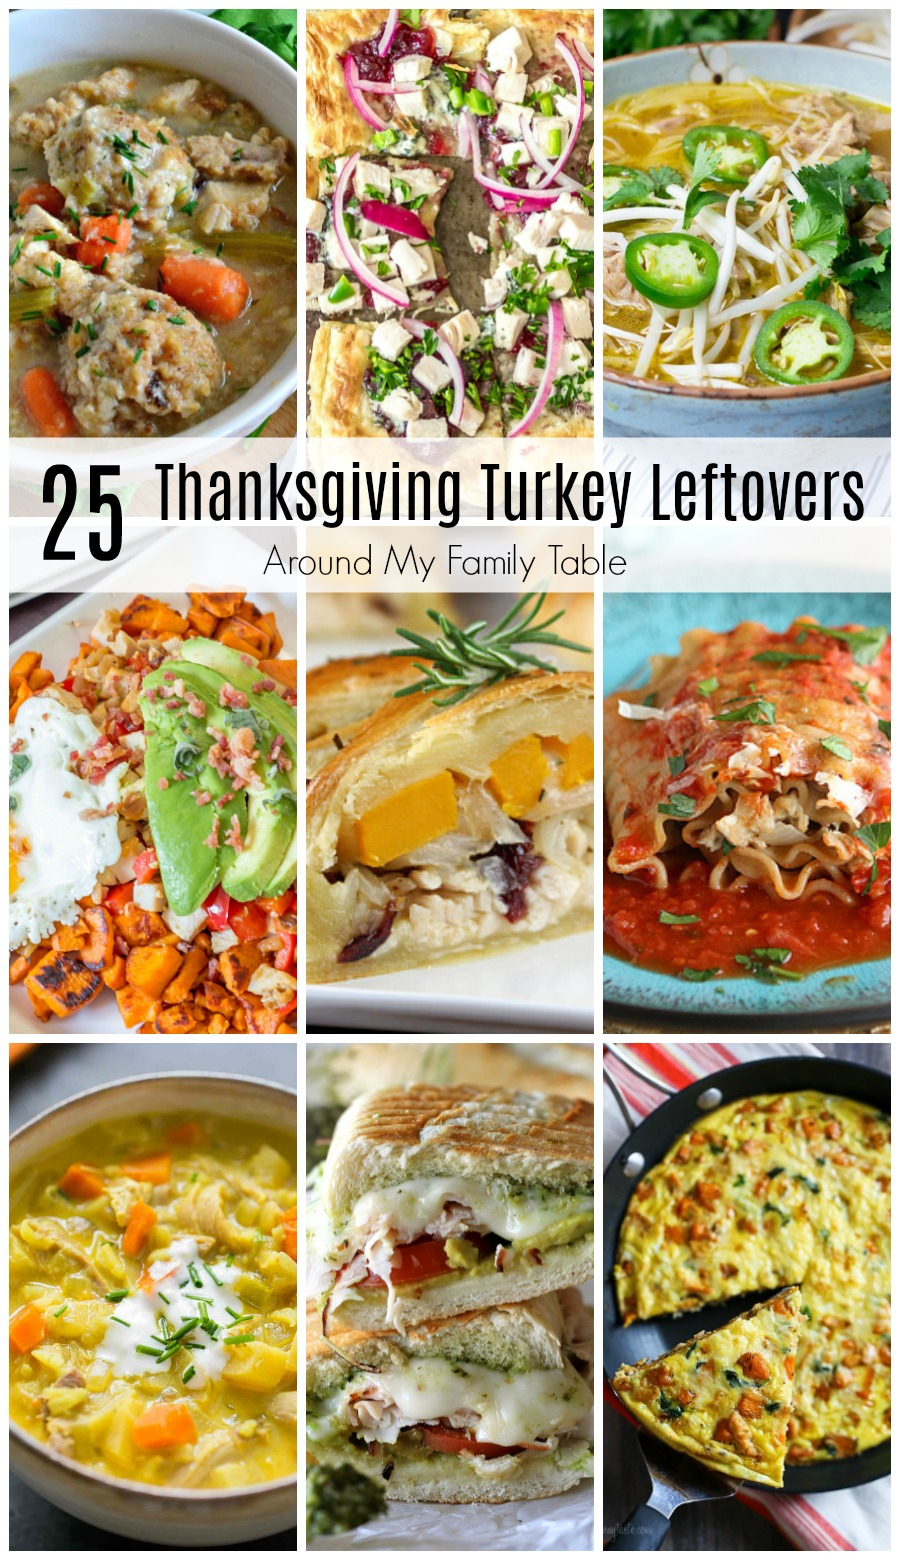 Don't you just love all the food for Thanksgiving? I make way too much so I compiled a list of over 25 of the best recipes for Thanksgiving Turkey Leftovers.